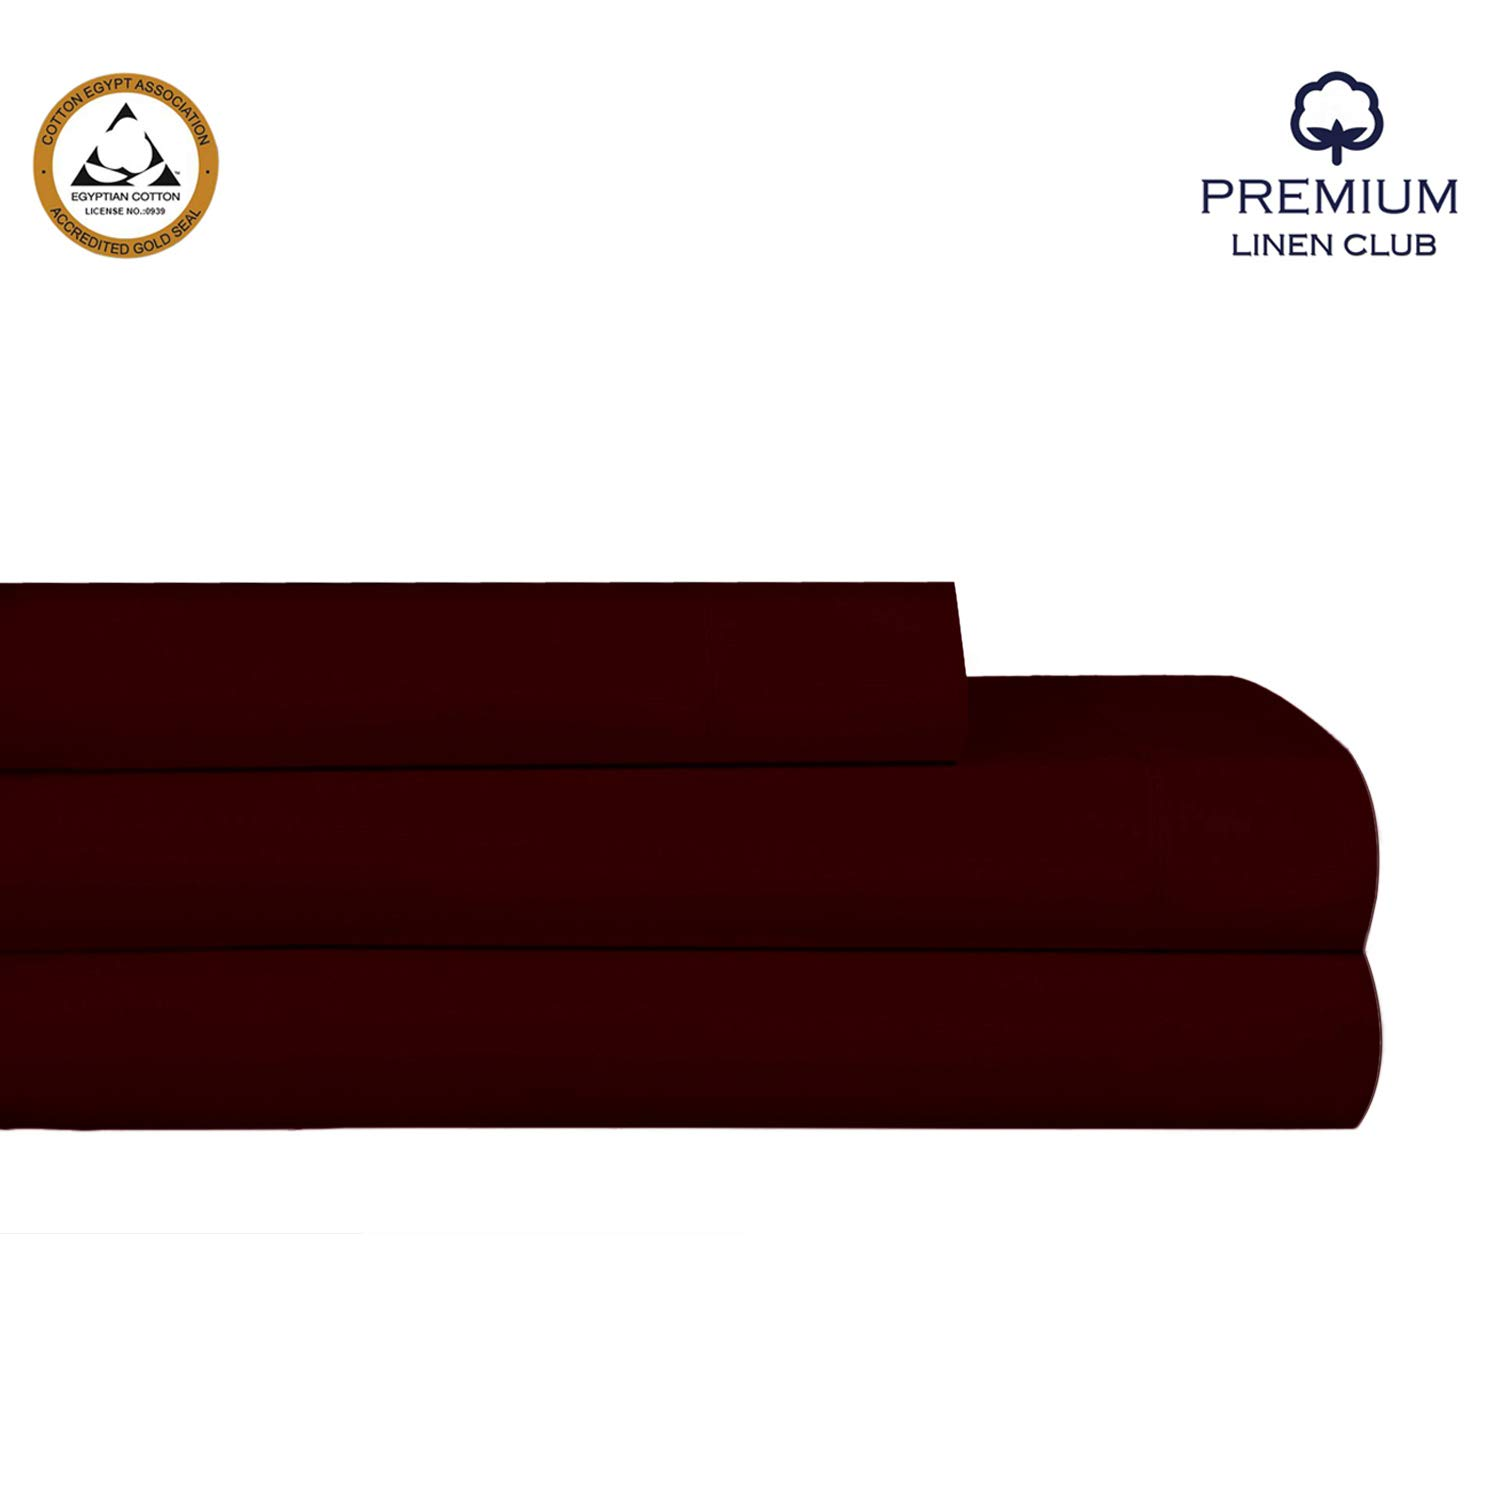 Twin XL Size 100% Egyptian Cotton 400 Thread Count 3 Piece Set Extra Long-Staple Egyptian Cotton Breathable Soft and Silky Sateen Weave Smooth Luxury Finish Sheet Set by Premium Linen Club(Burgundy)